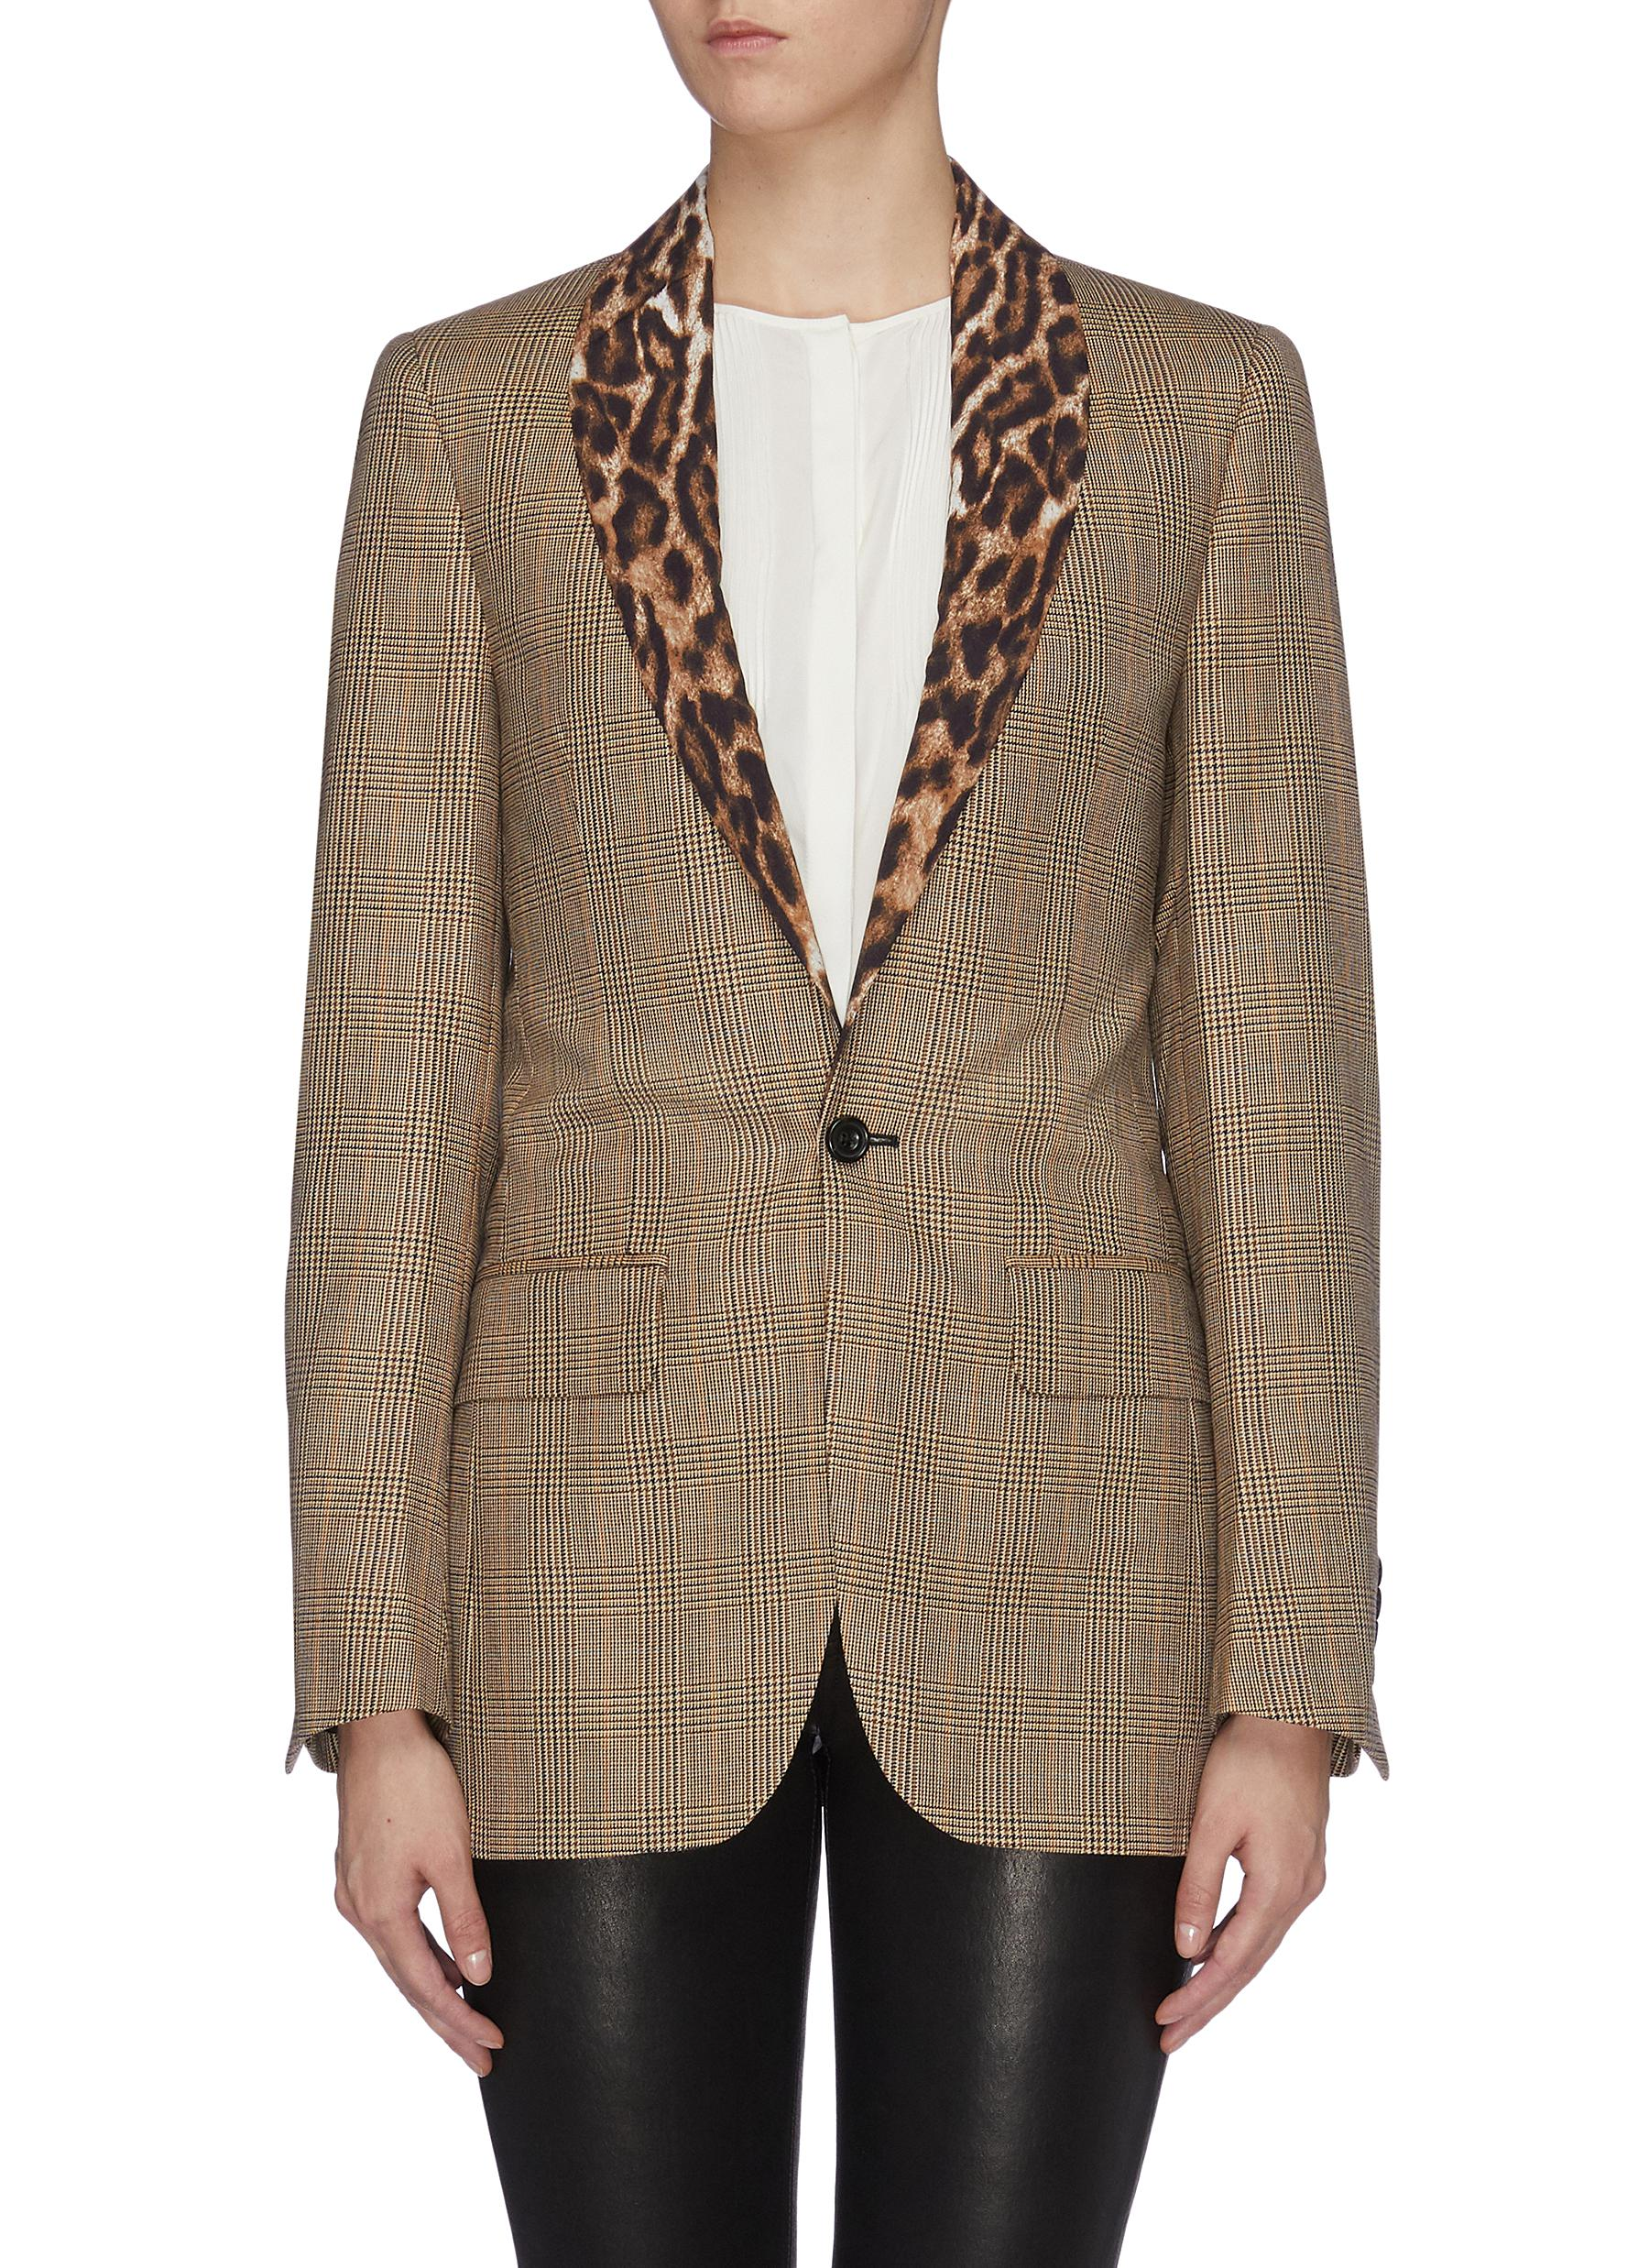 Leopard print shawl lapel wool houndstooth check plaid blazer by R13